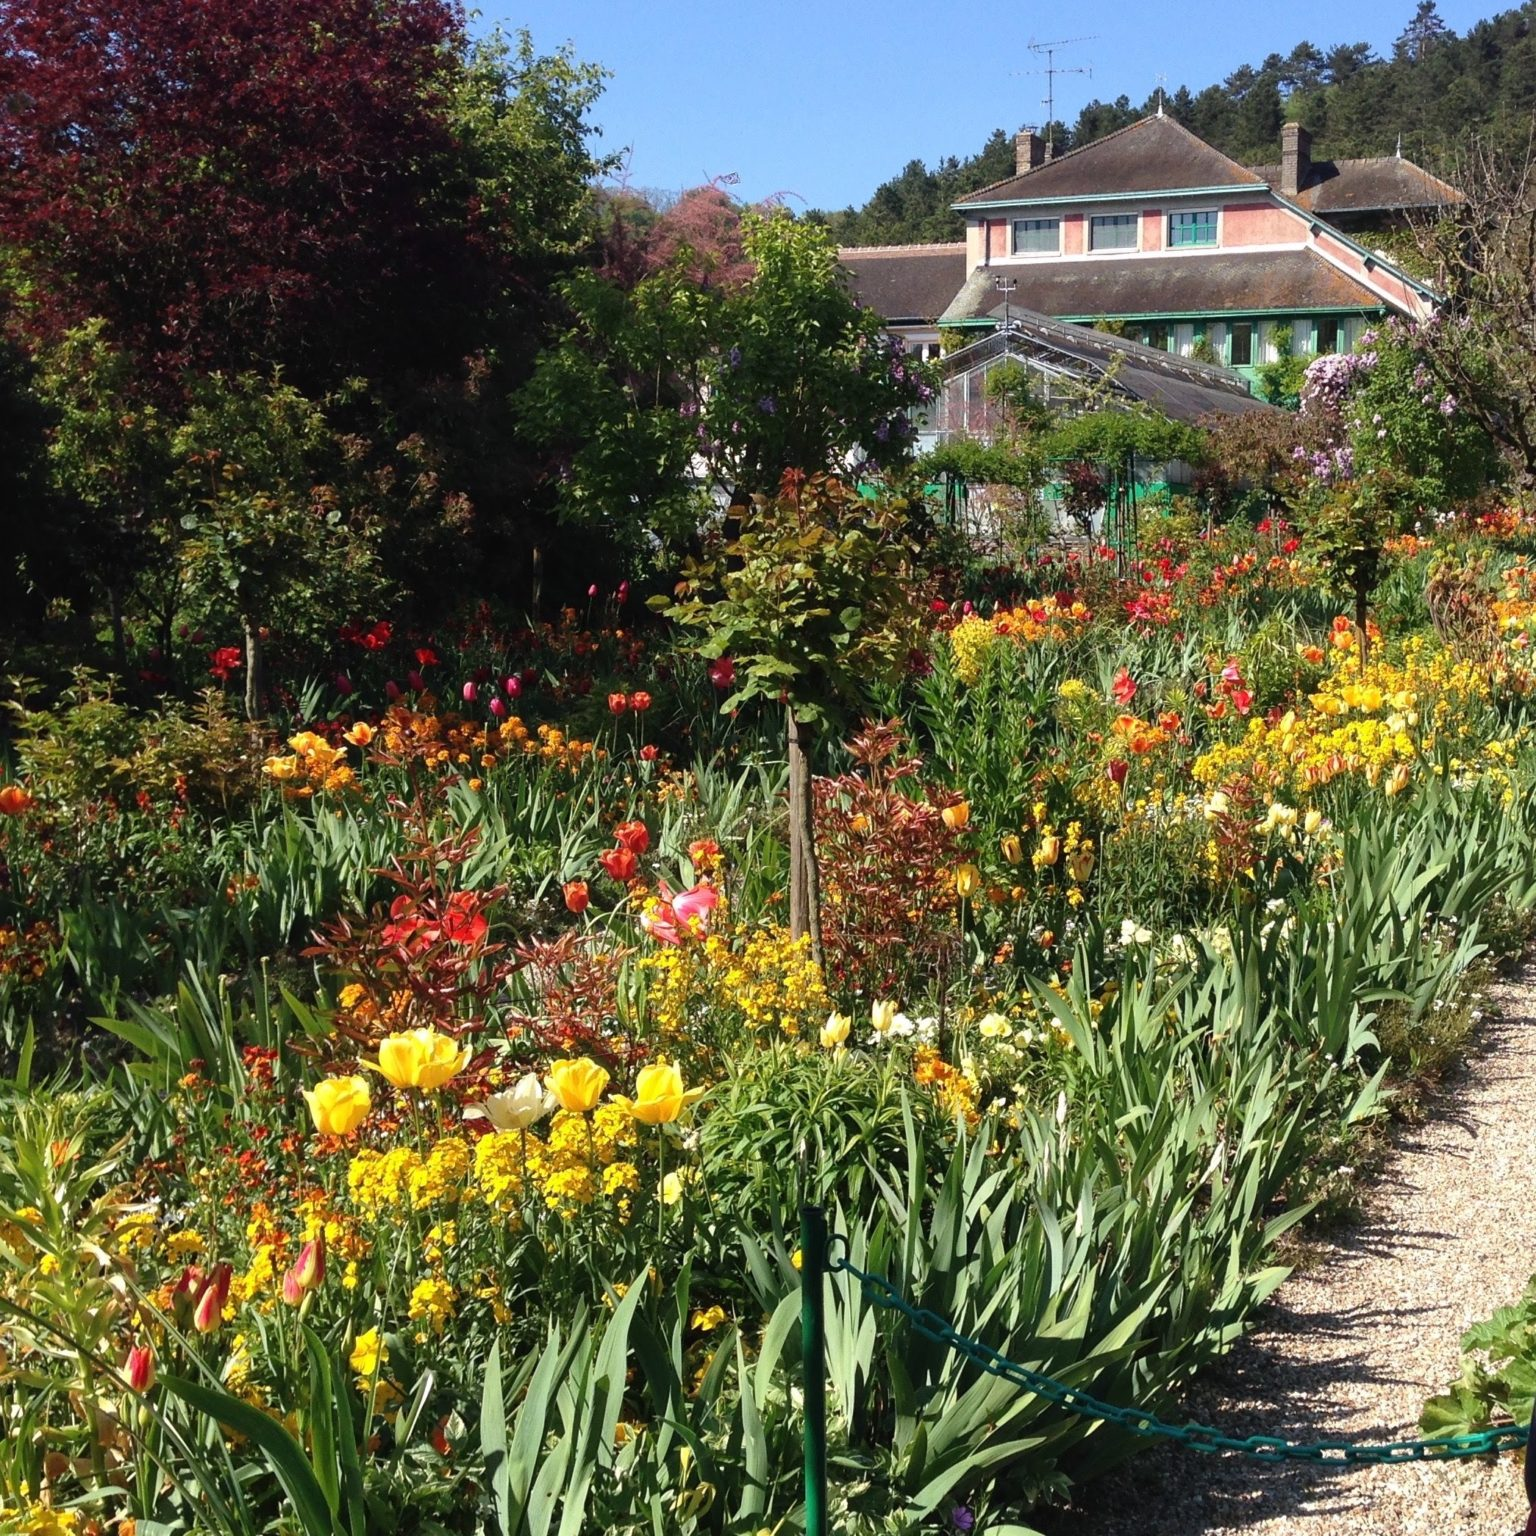 Rows and rows of flowers in bloom in the Giverny gardens